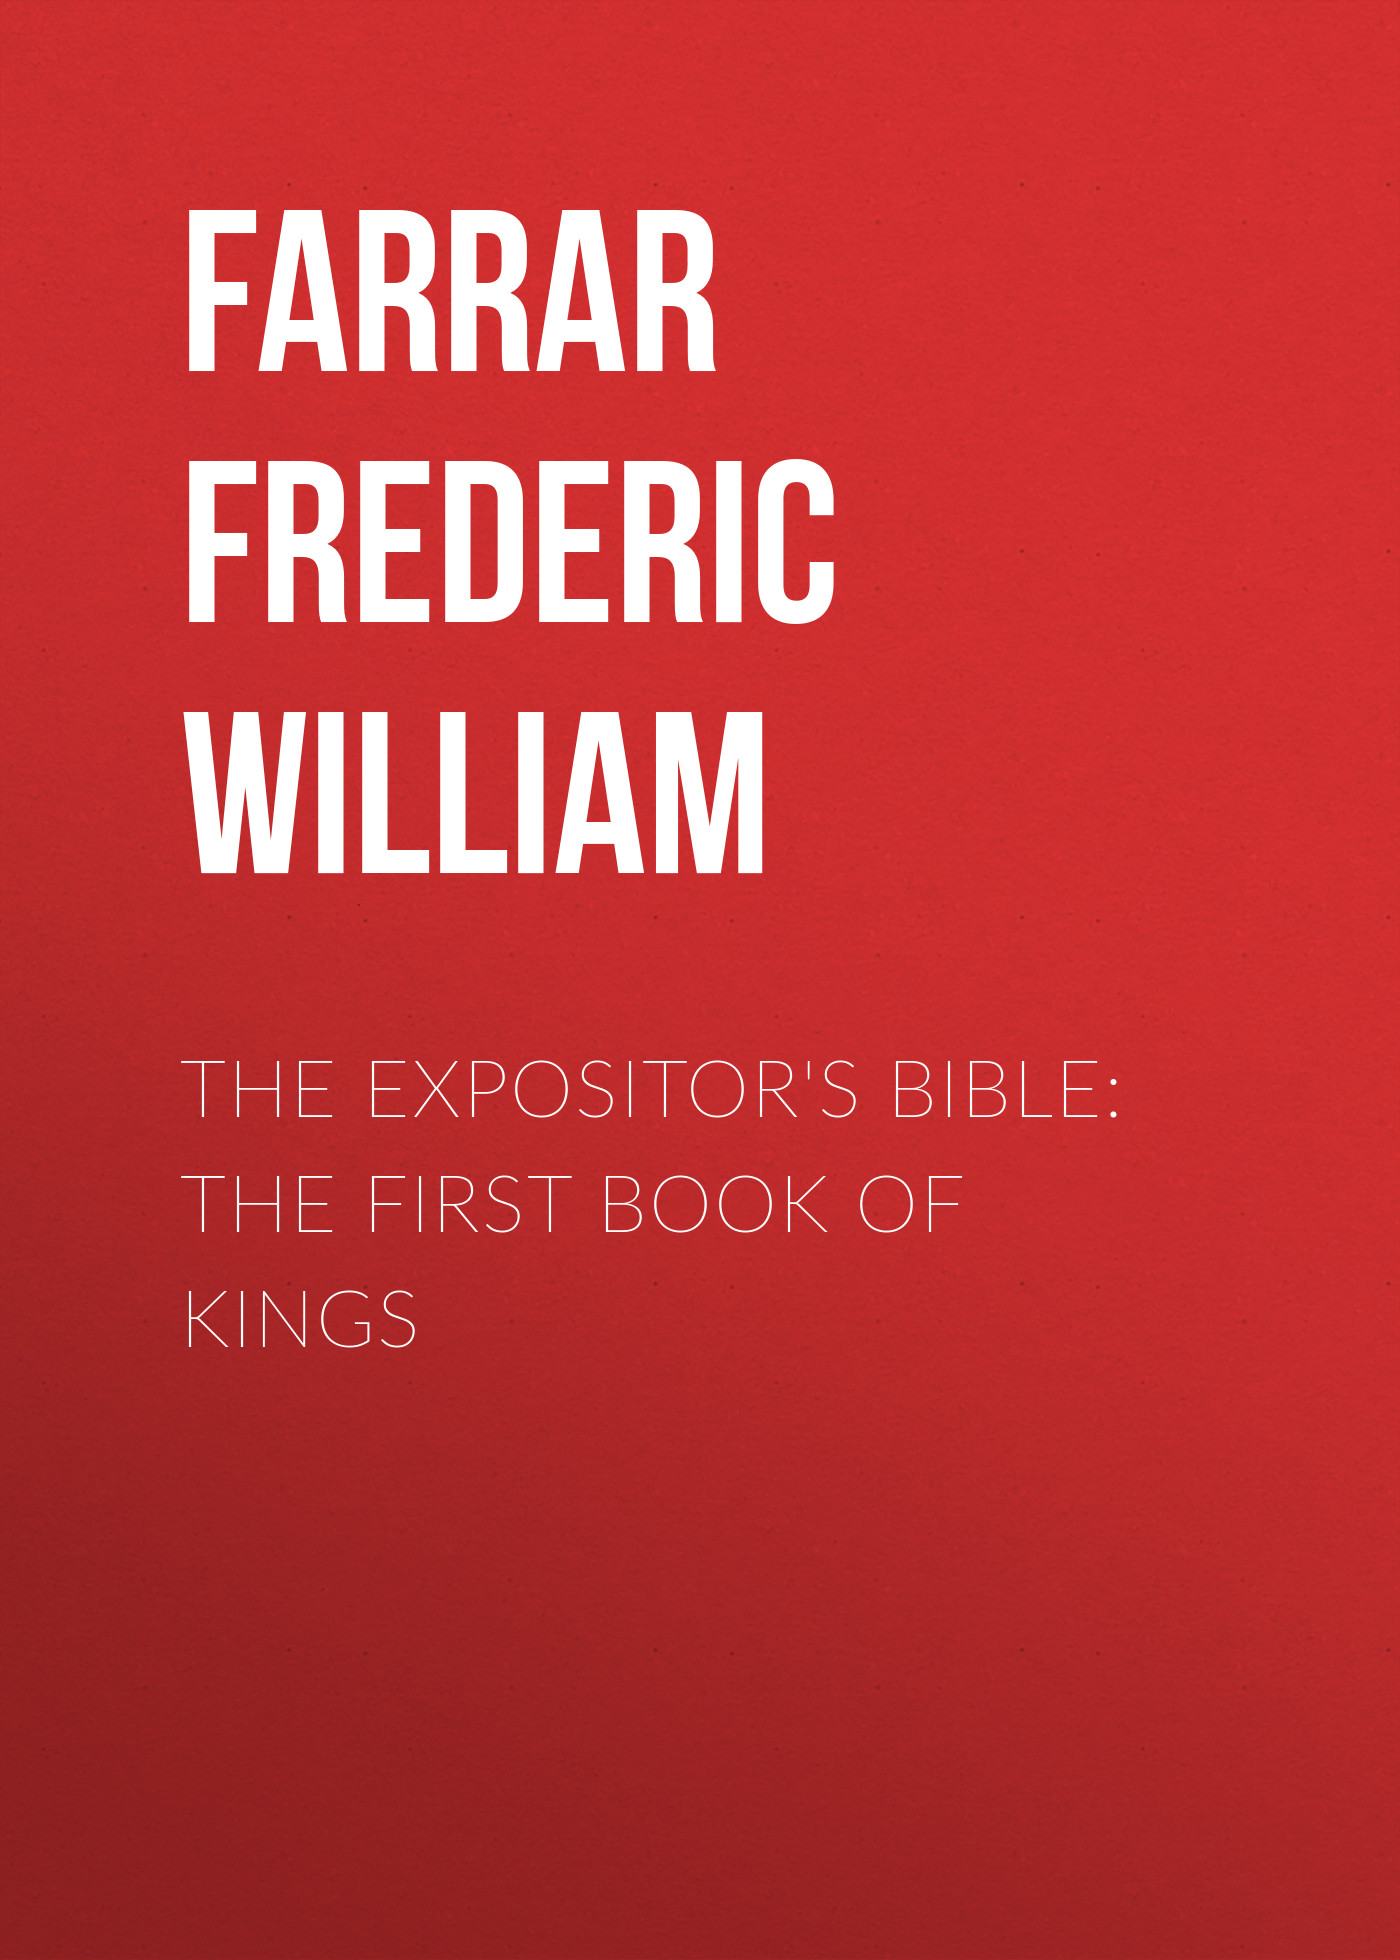 Farrar Frederic William The Expositor's Bible: The First Book of Kings william garden blaikie the book of joshua v 6